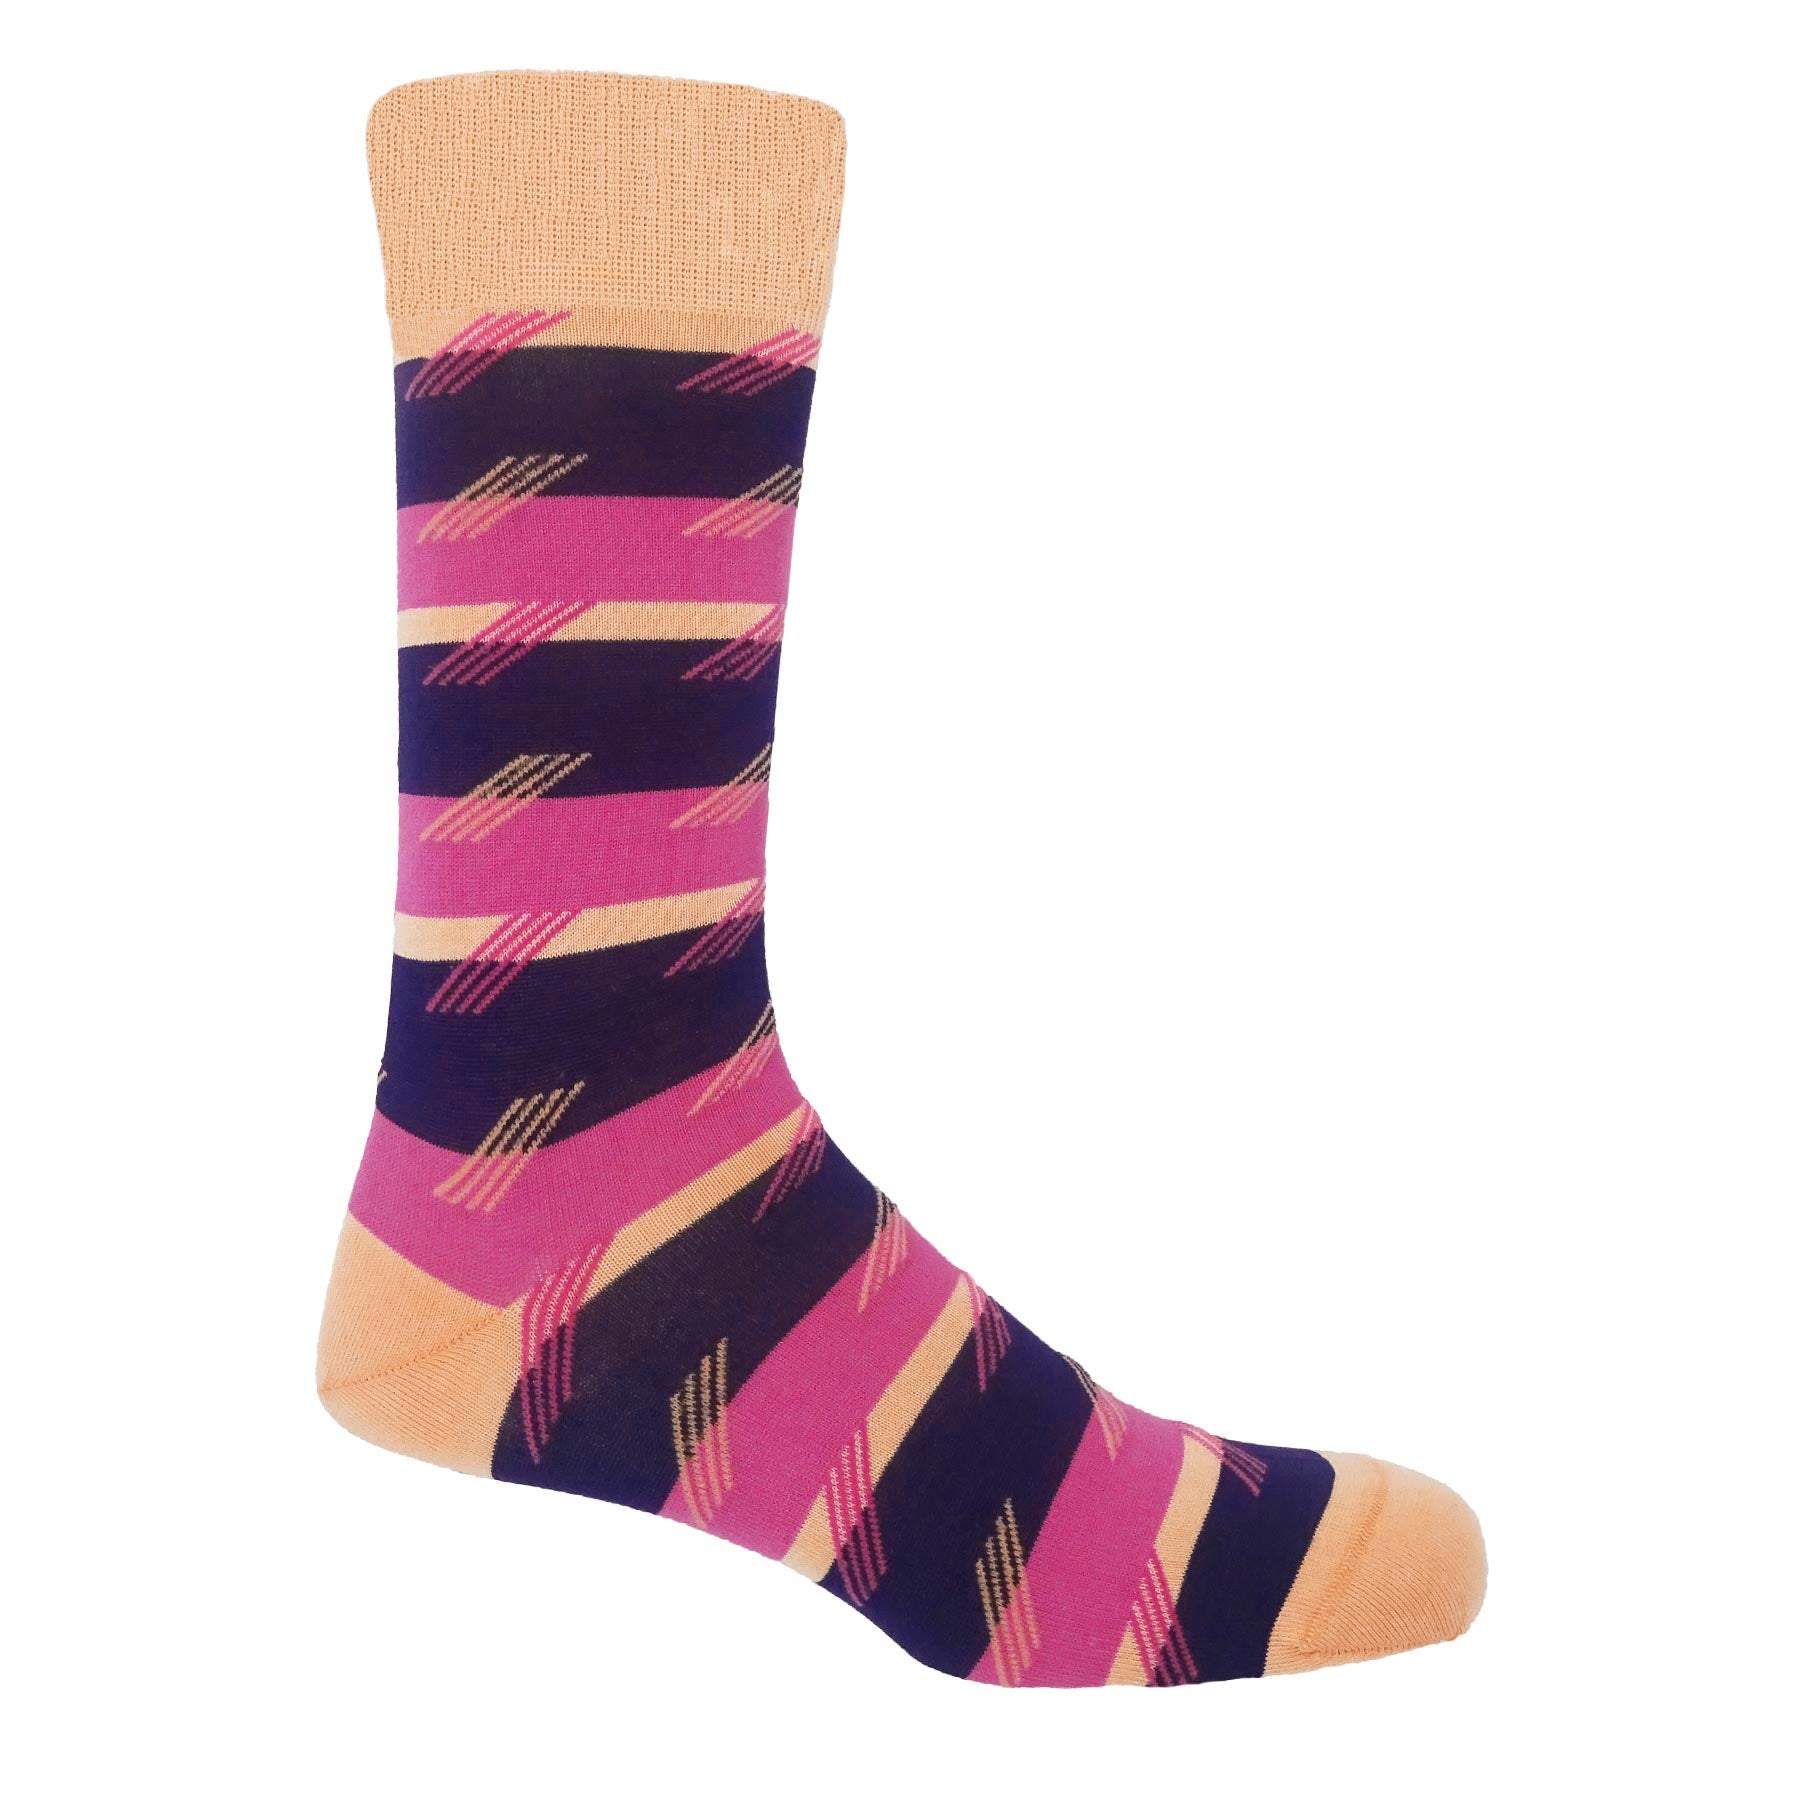 Plum Diagonal Stripe Socks